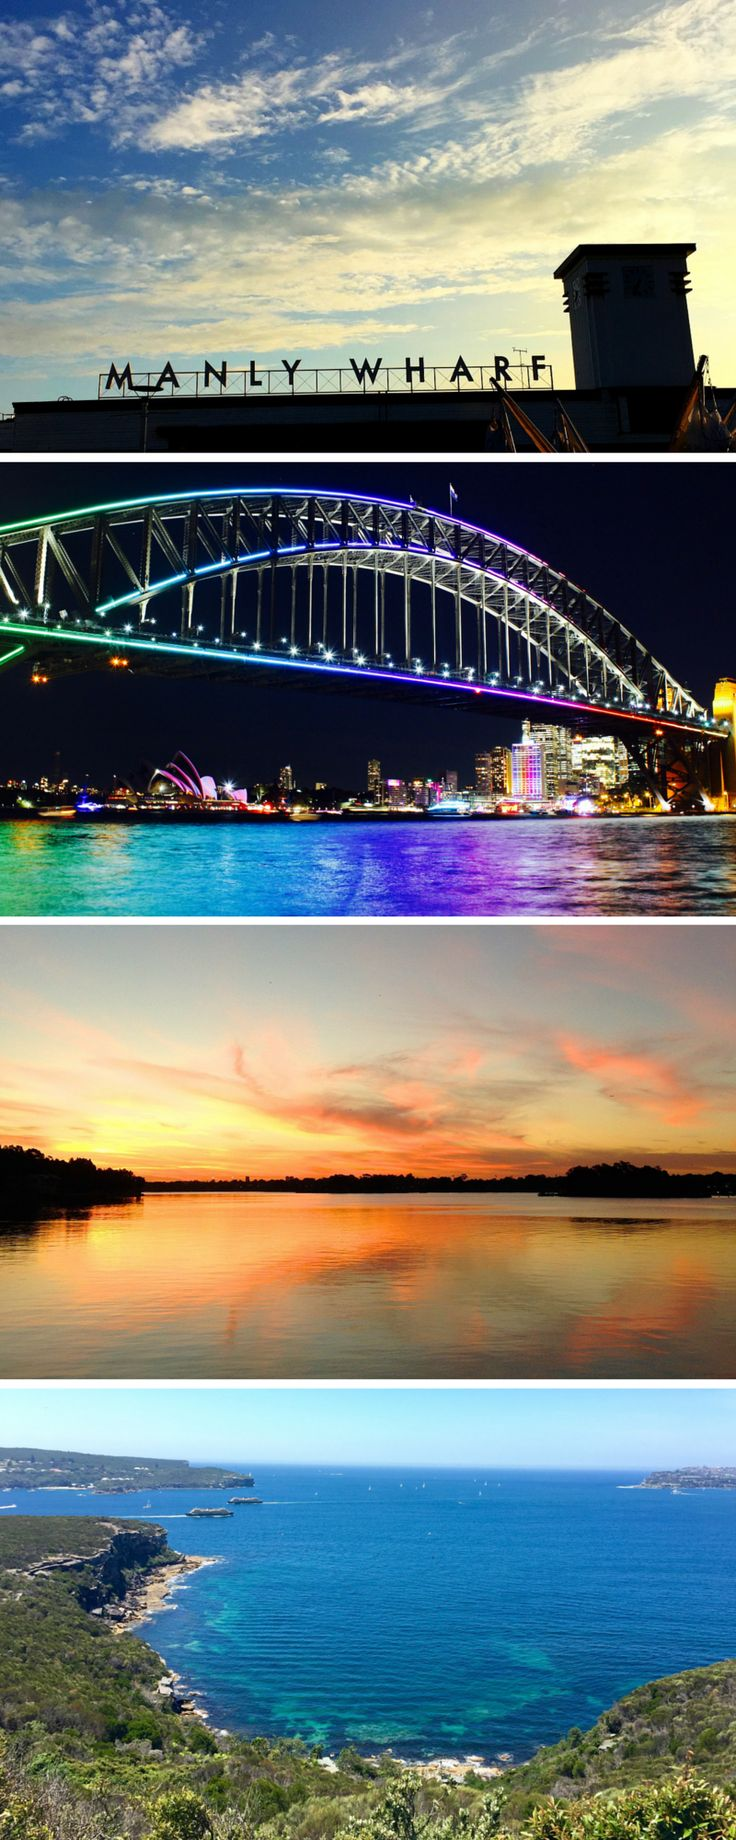 Just a few of our most favourite spots in our beautiful city of #Sydney...#Manly, #Narrabeen, #SydneyHarbourBridge and #MiddleHead. #LoveSydney